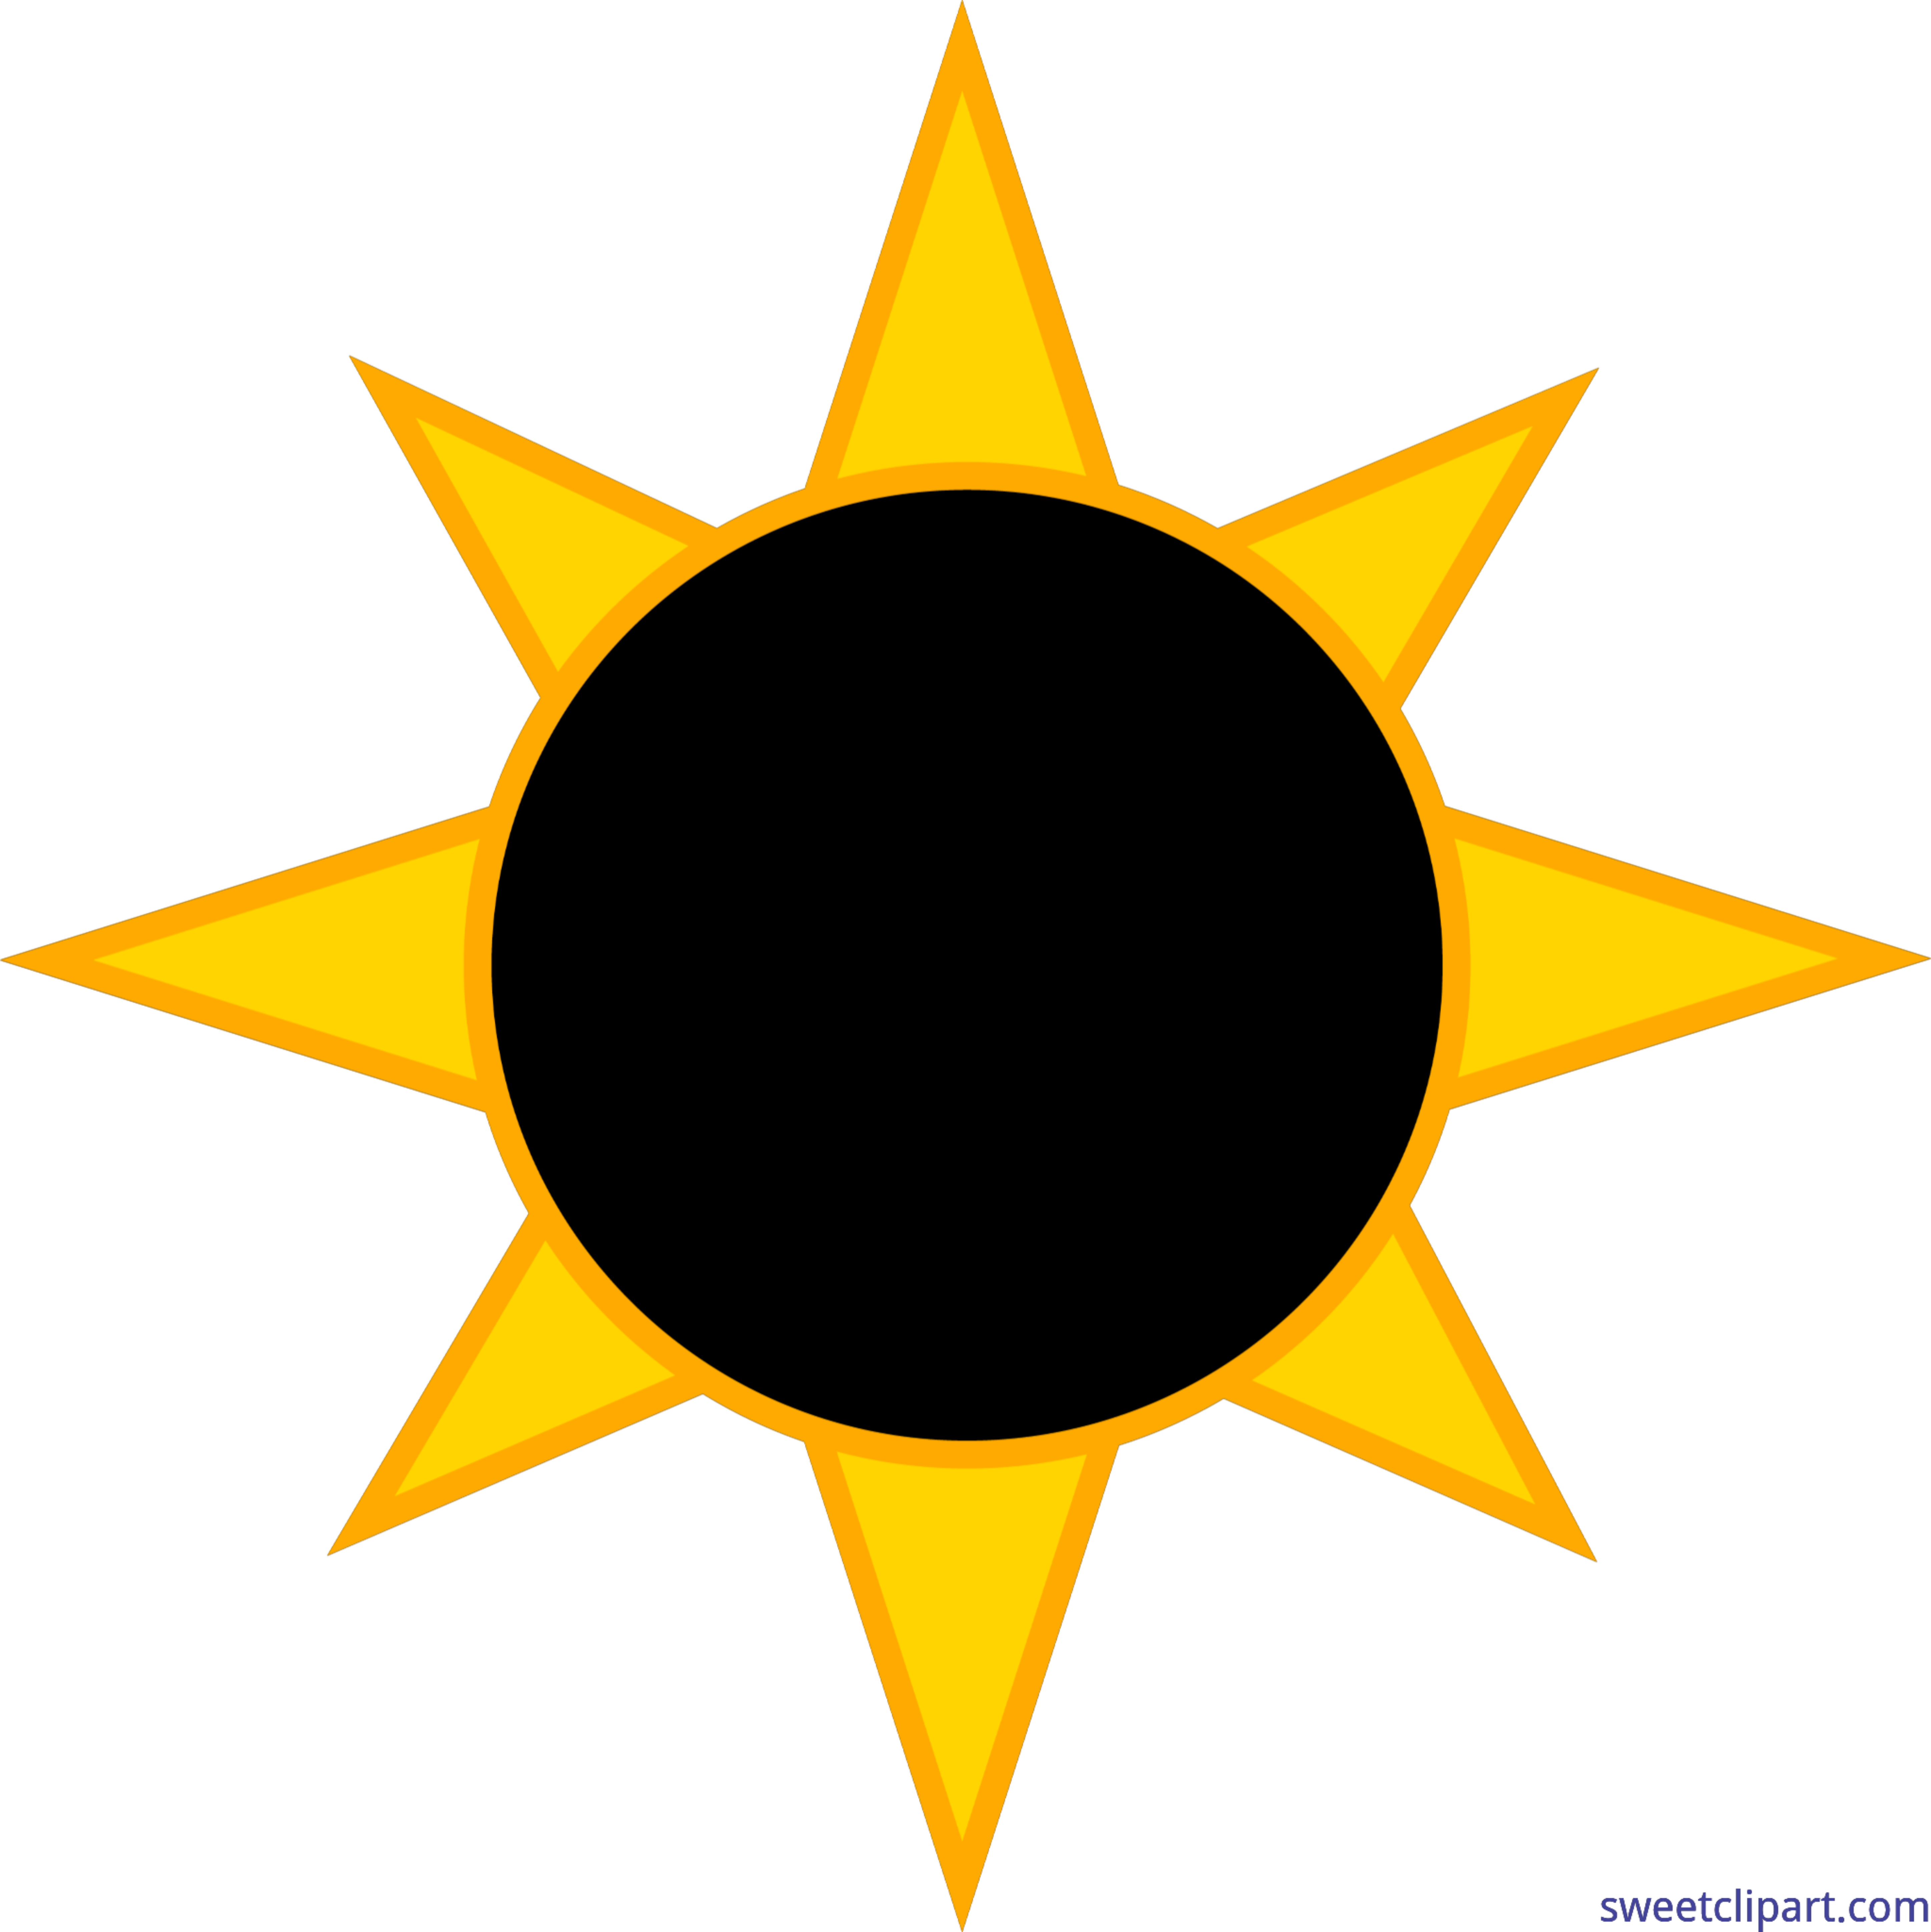 Solar sun clipart jpg free stock Clipart Eclipse at GetDrawings.com | Free for personal use Clipart ... jpg free stock